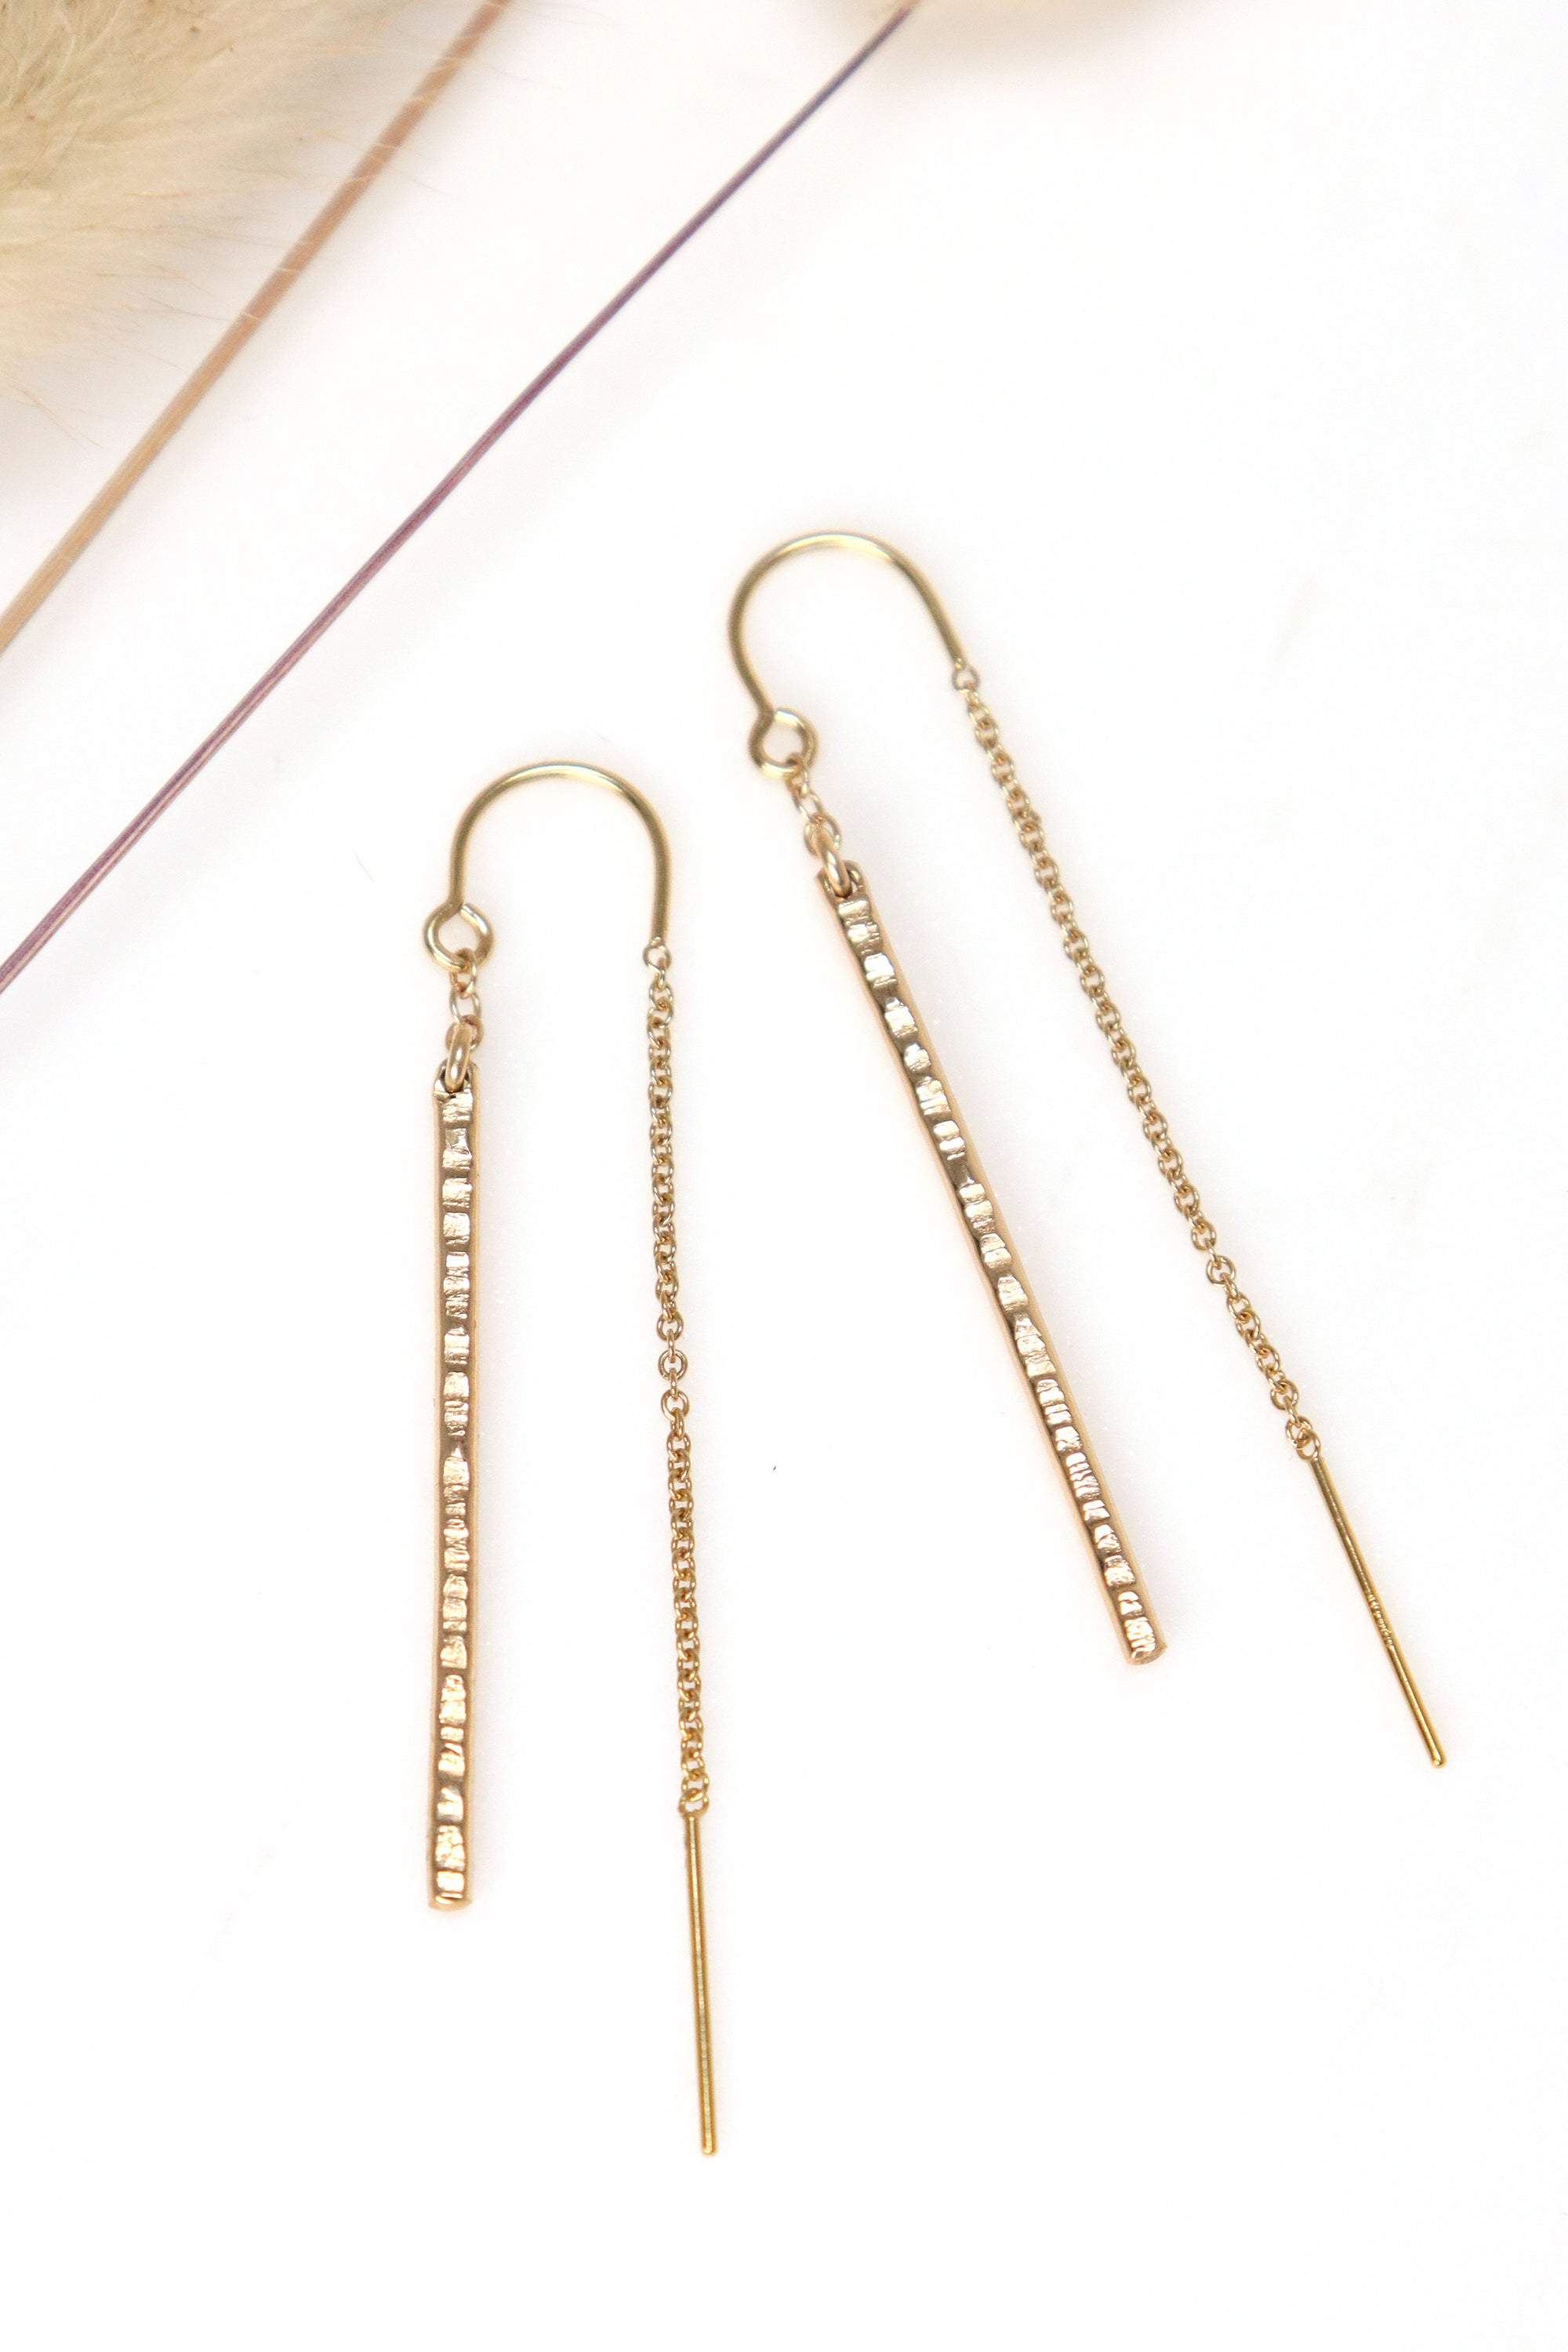 Gestalt Threader Earrings